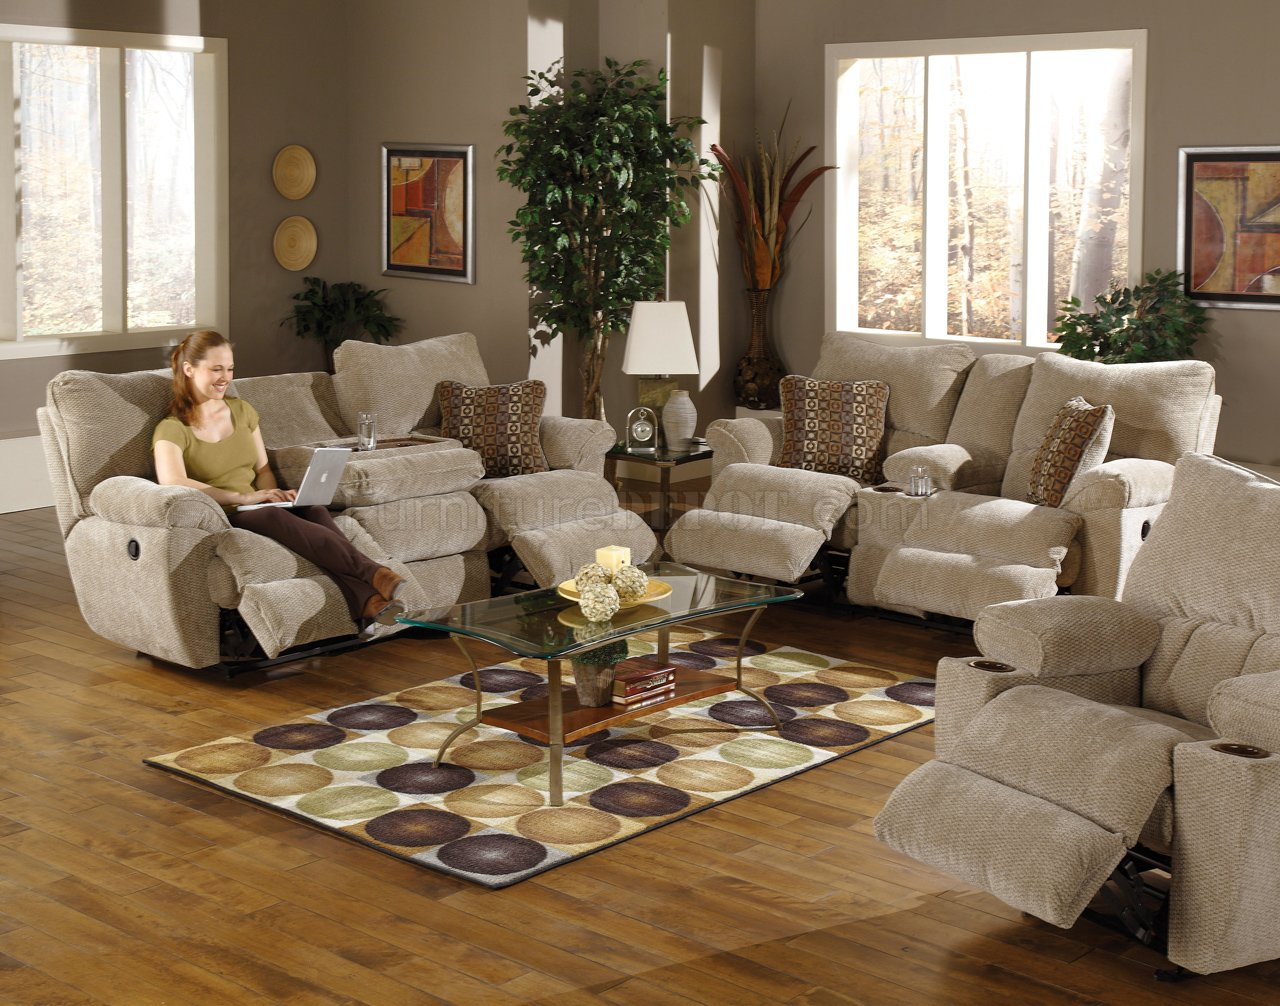 reclining living room furniture sets. Reclining Living Room Furniture Sets O